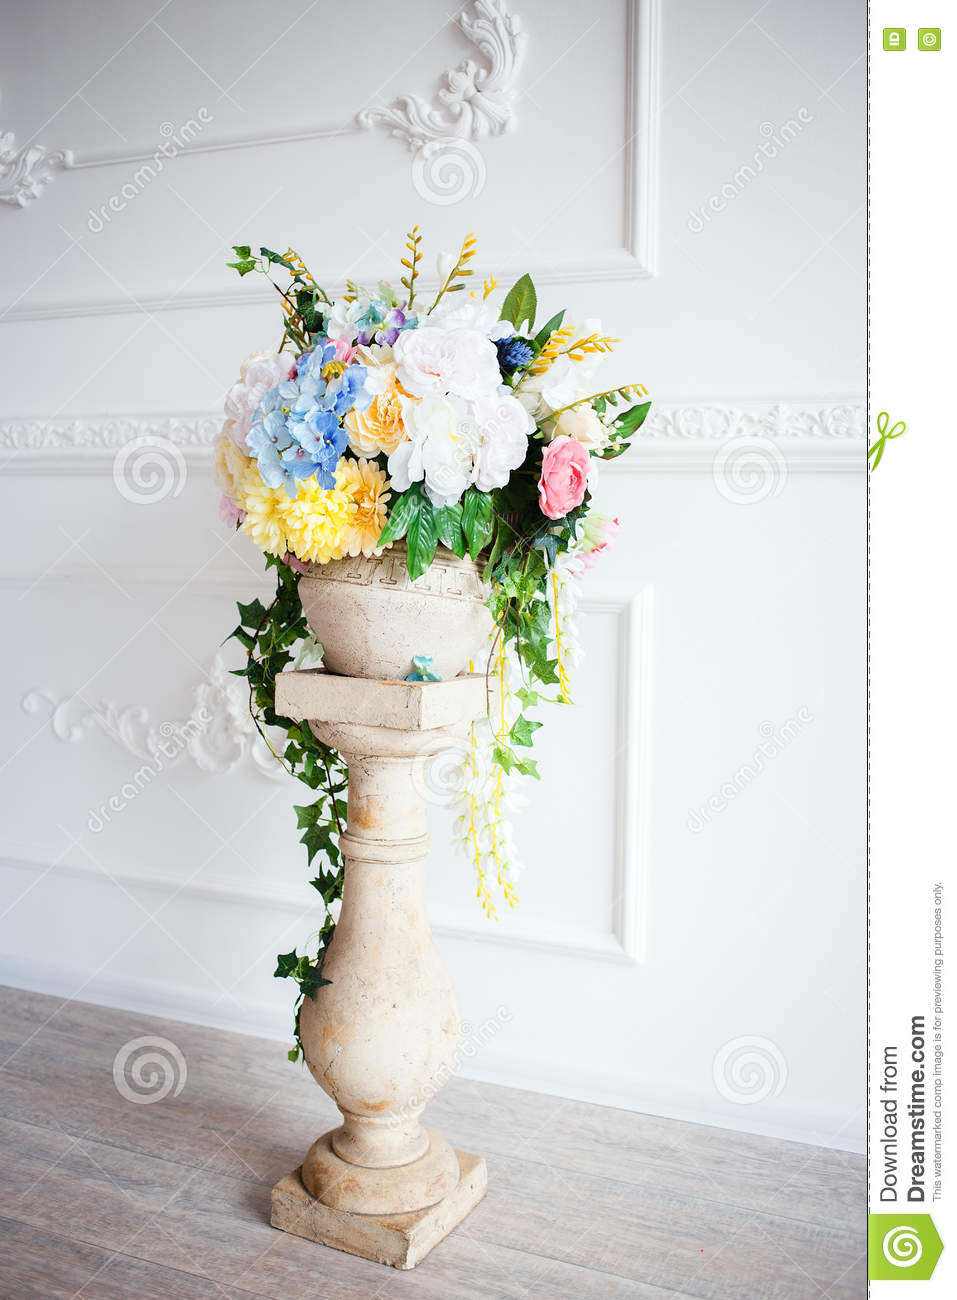 Vintage rome vases stock image image of barri ancient 80385837 royalty free stock photo floridaeventfo Gallery